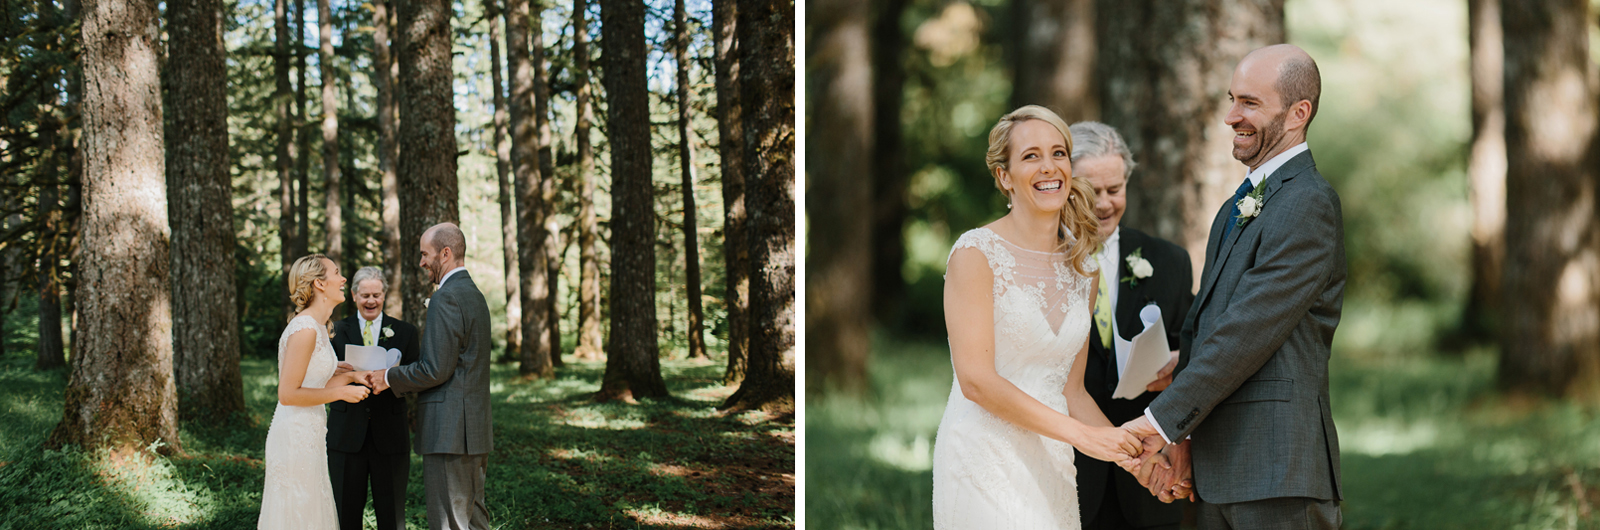 Silver Falls State Park Wedding by Anna Jaye Photography 049